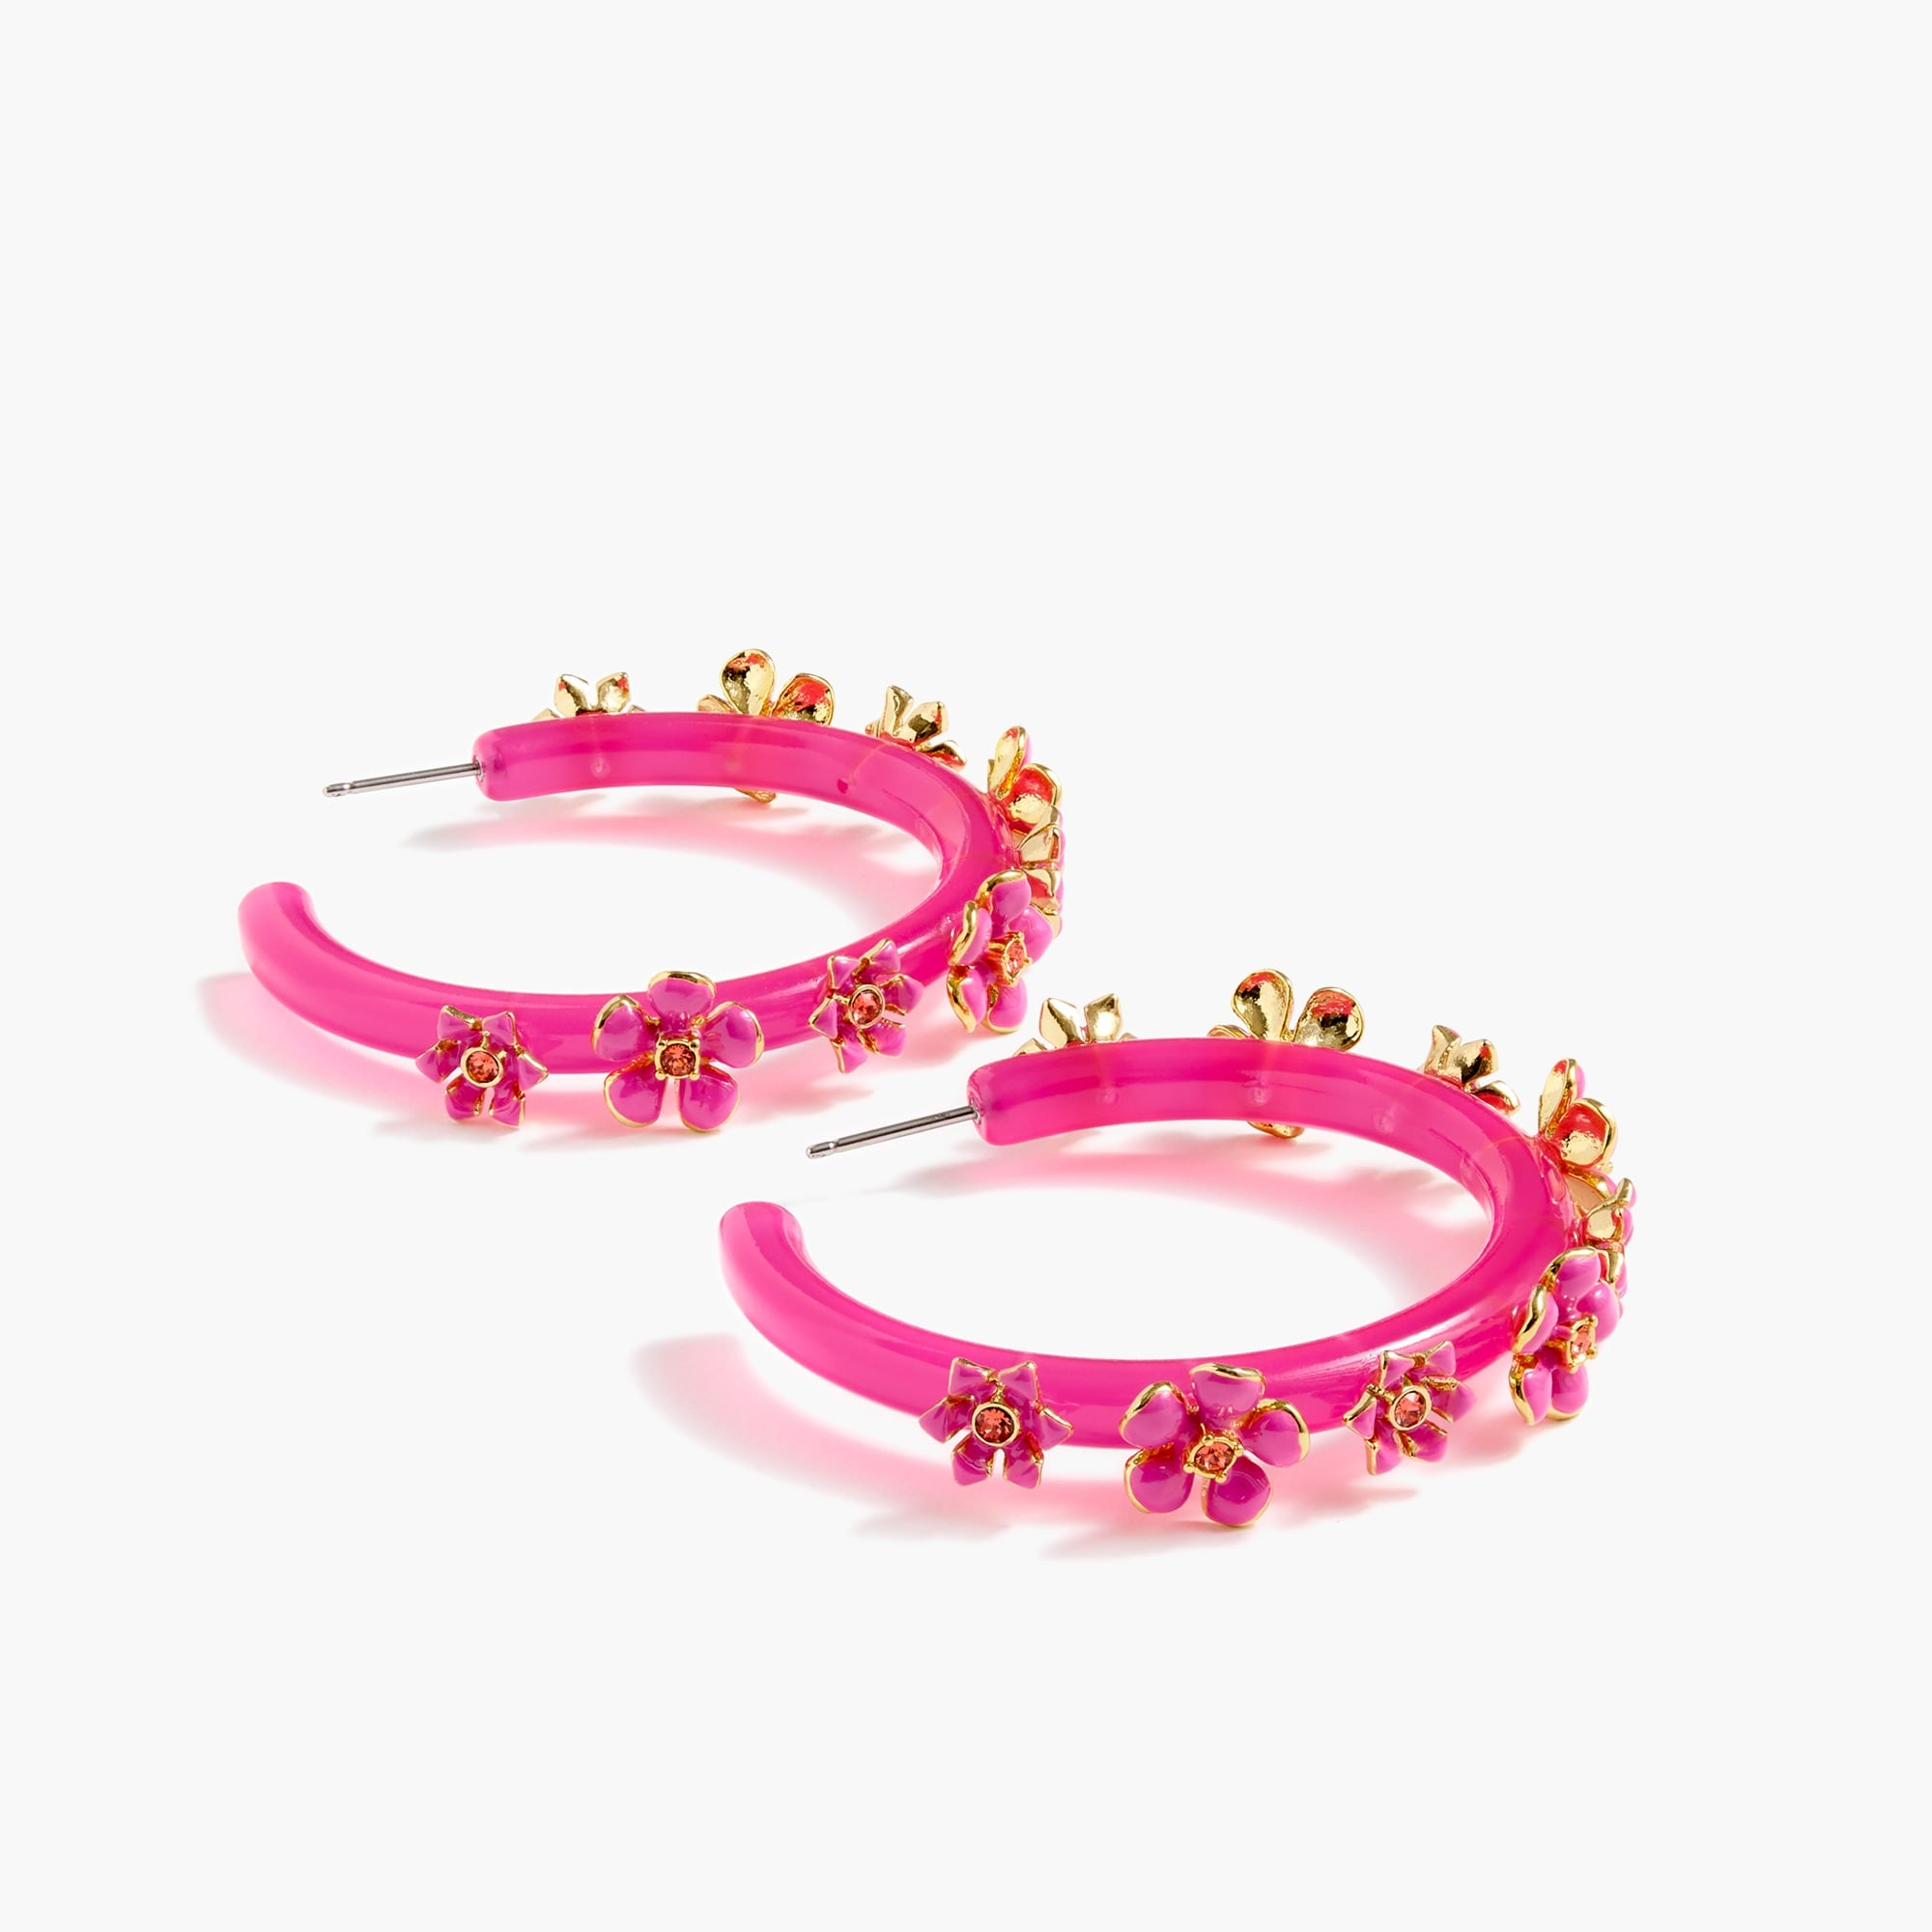 Flower clock hoop earrings women new arrivals c